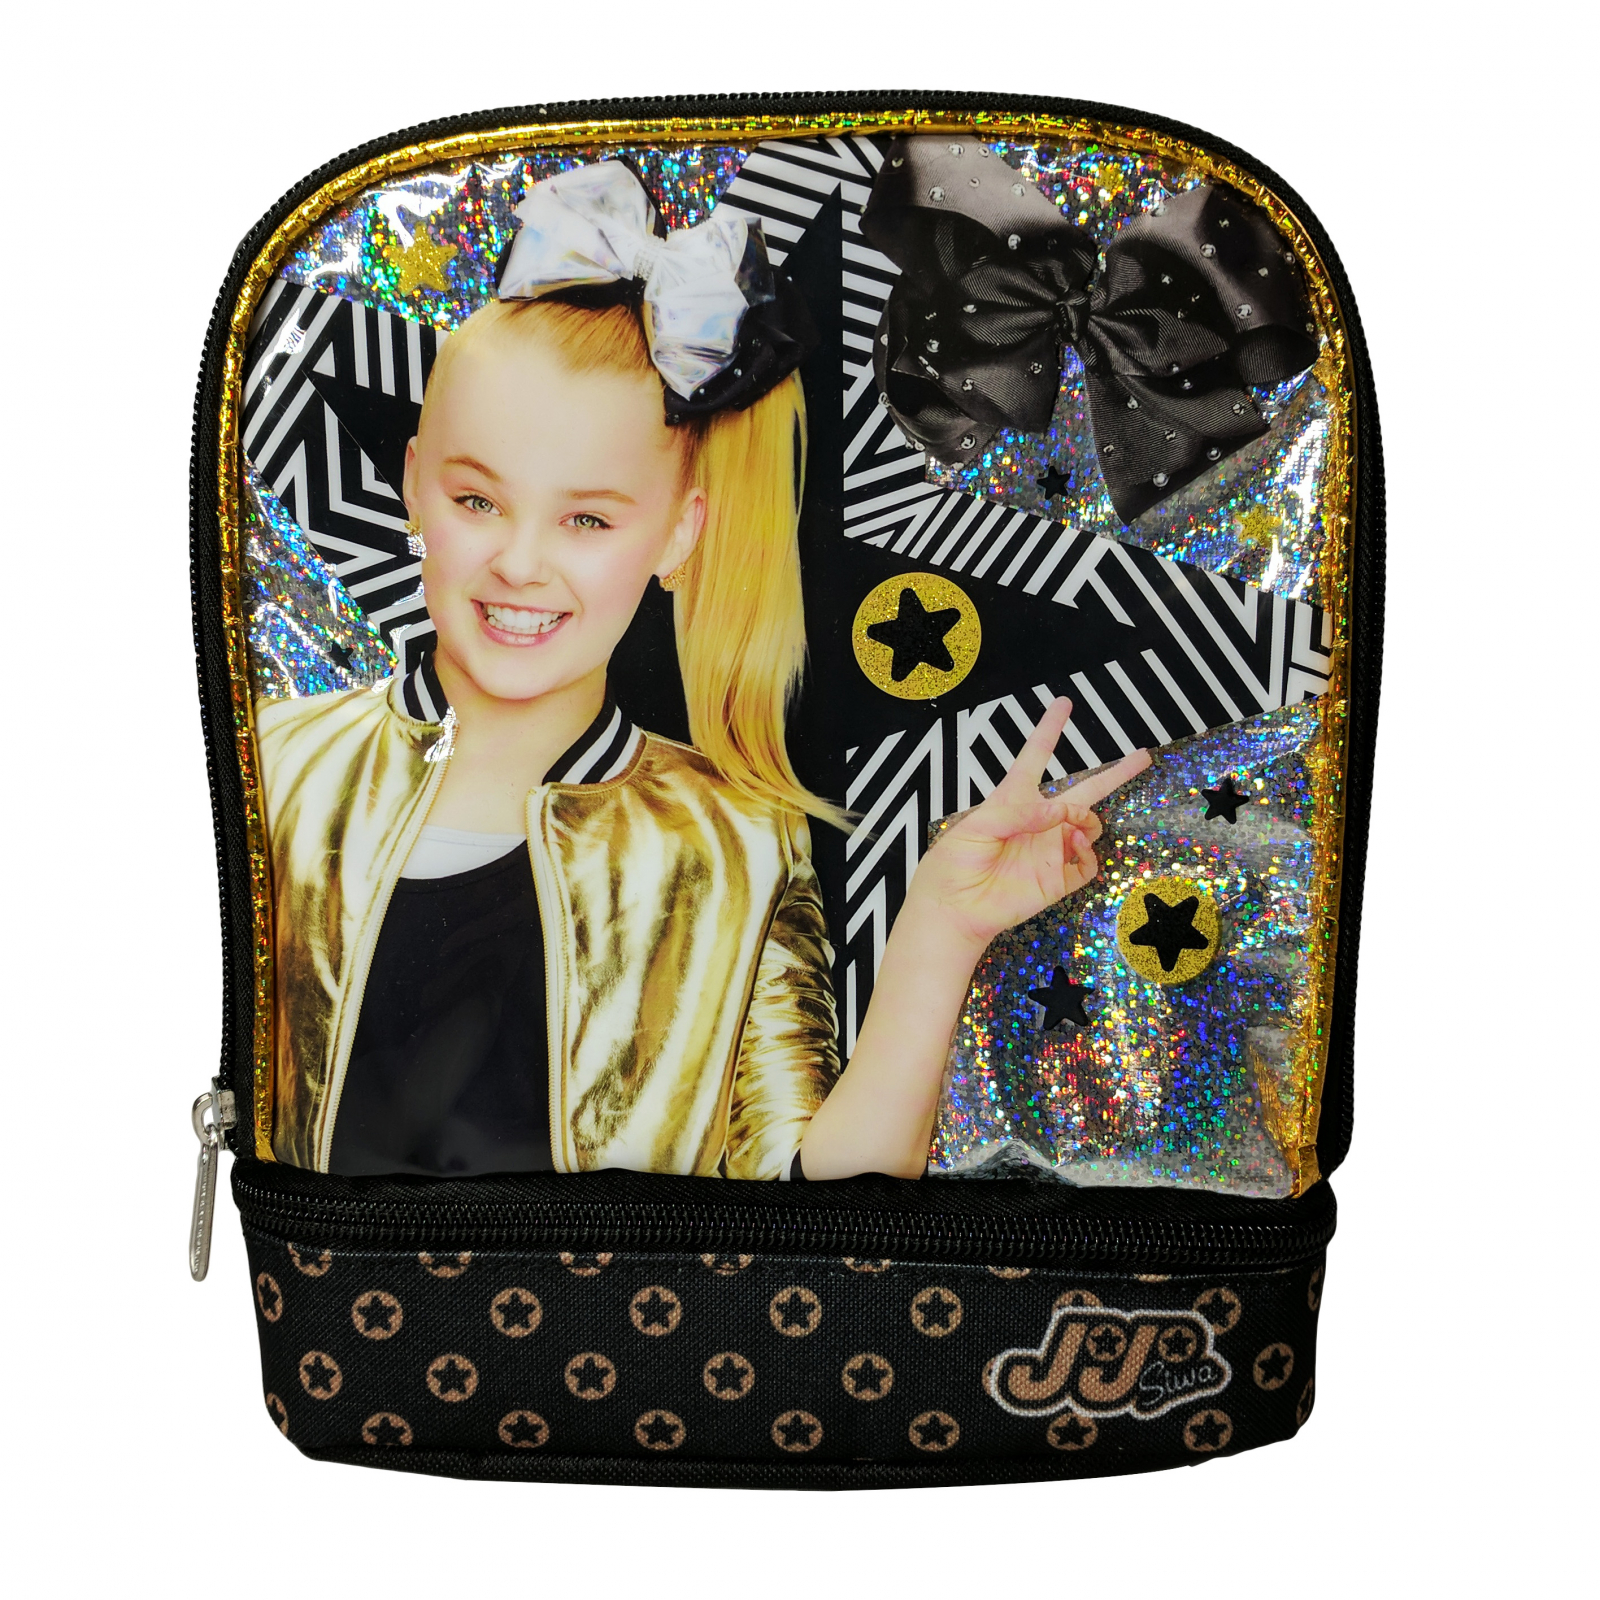 JoJo Siwa Back to School Bows Insulated Double Compartment Lunch Box